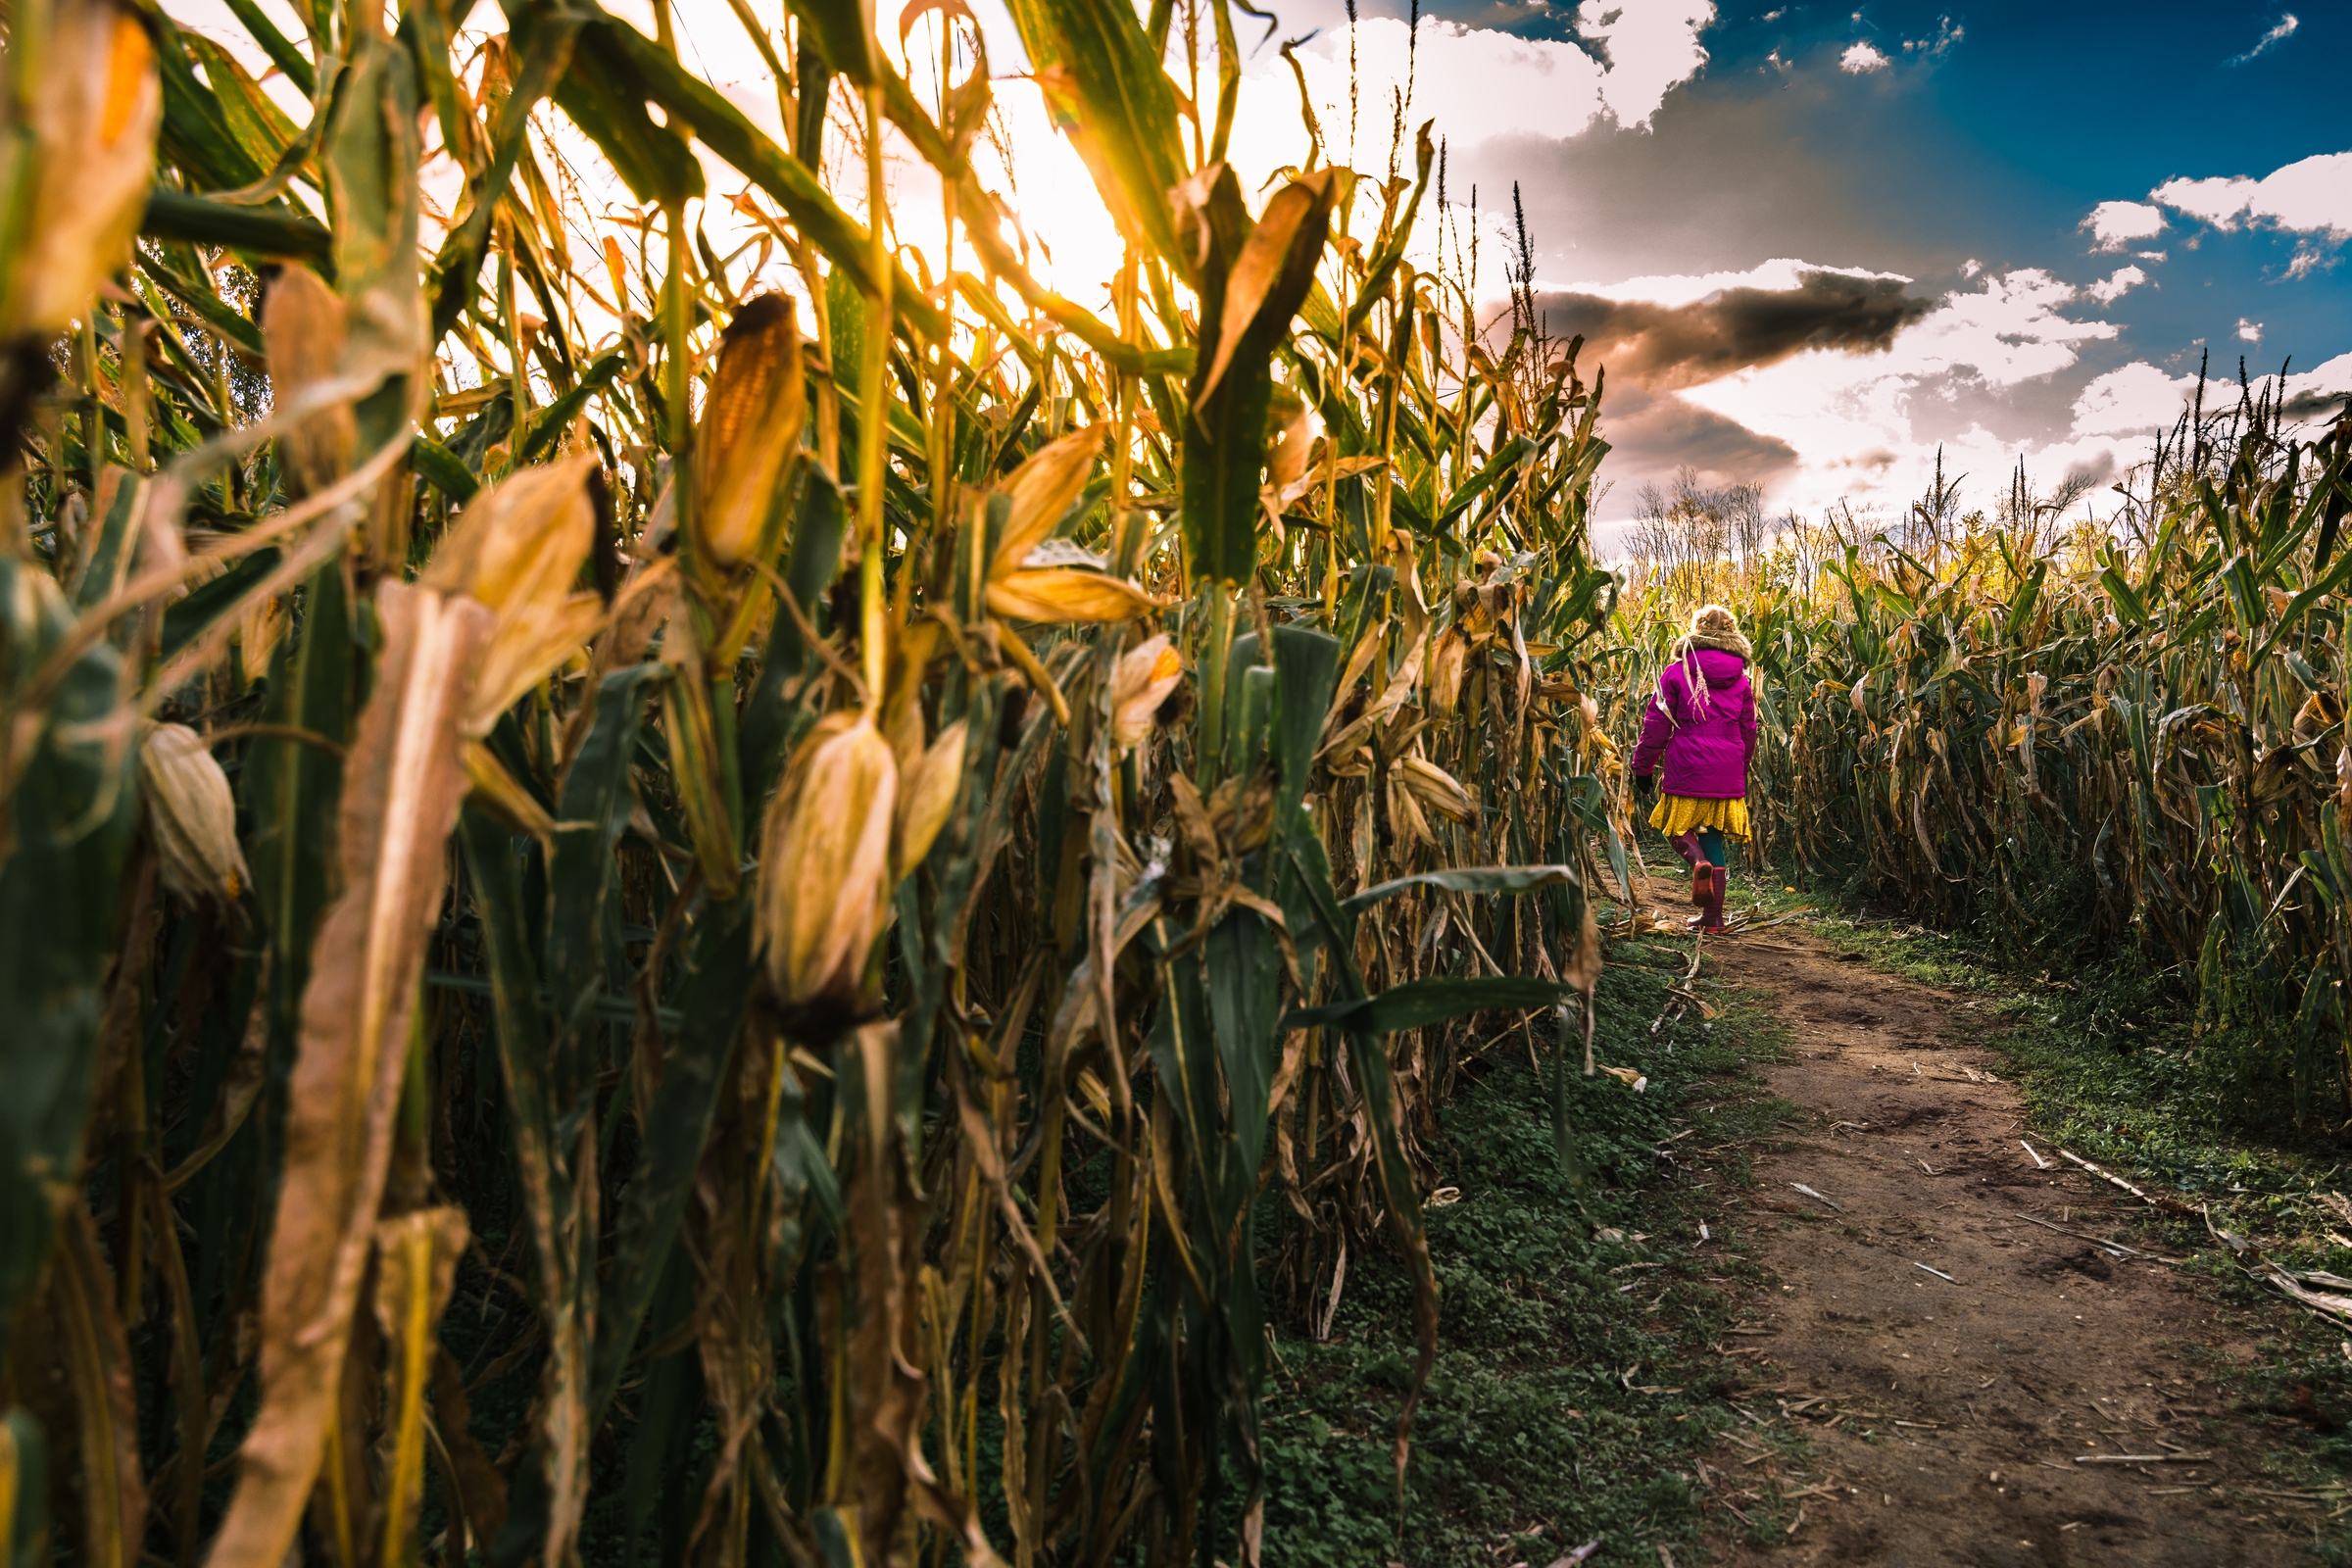 mickie_3 girl walking through field of corn maze fall activities by mickie devries